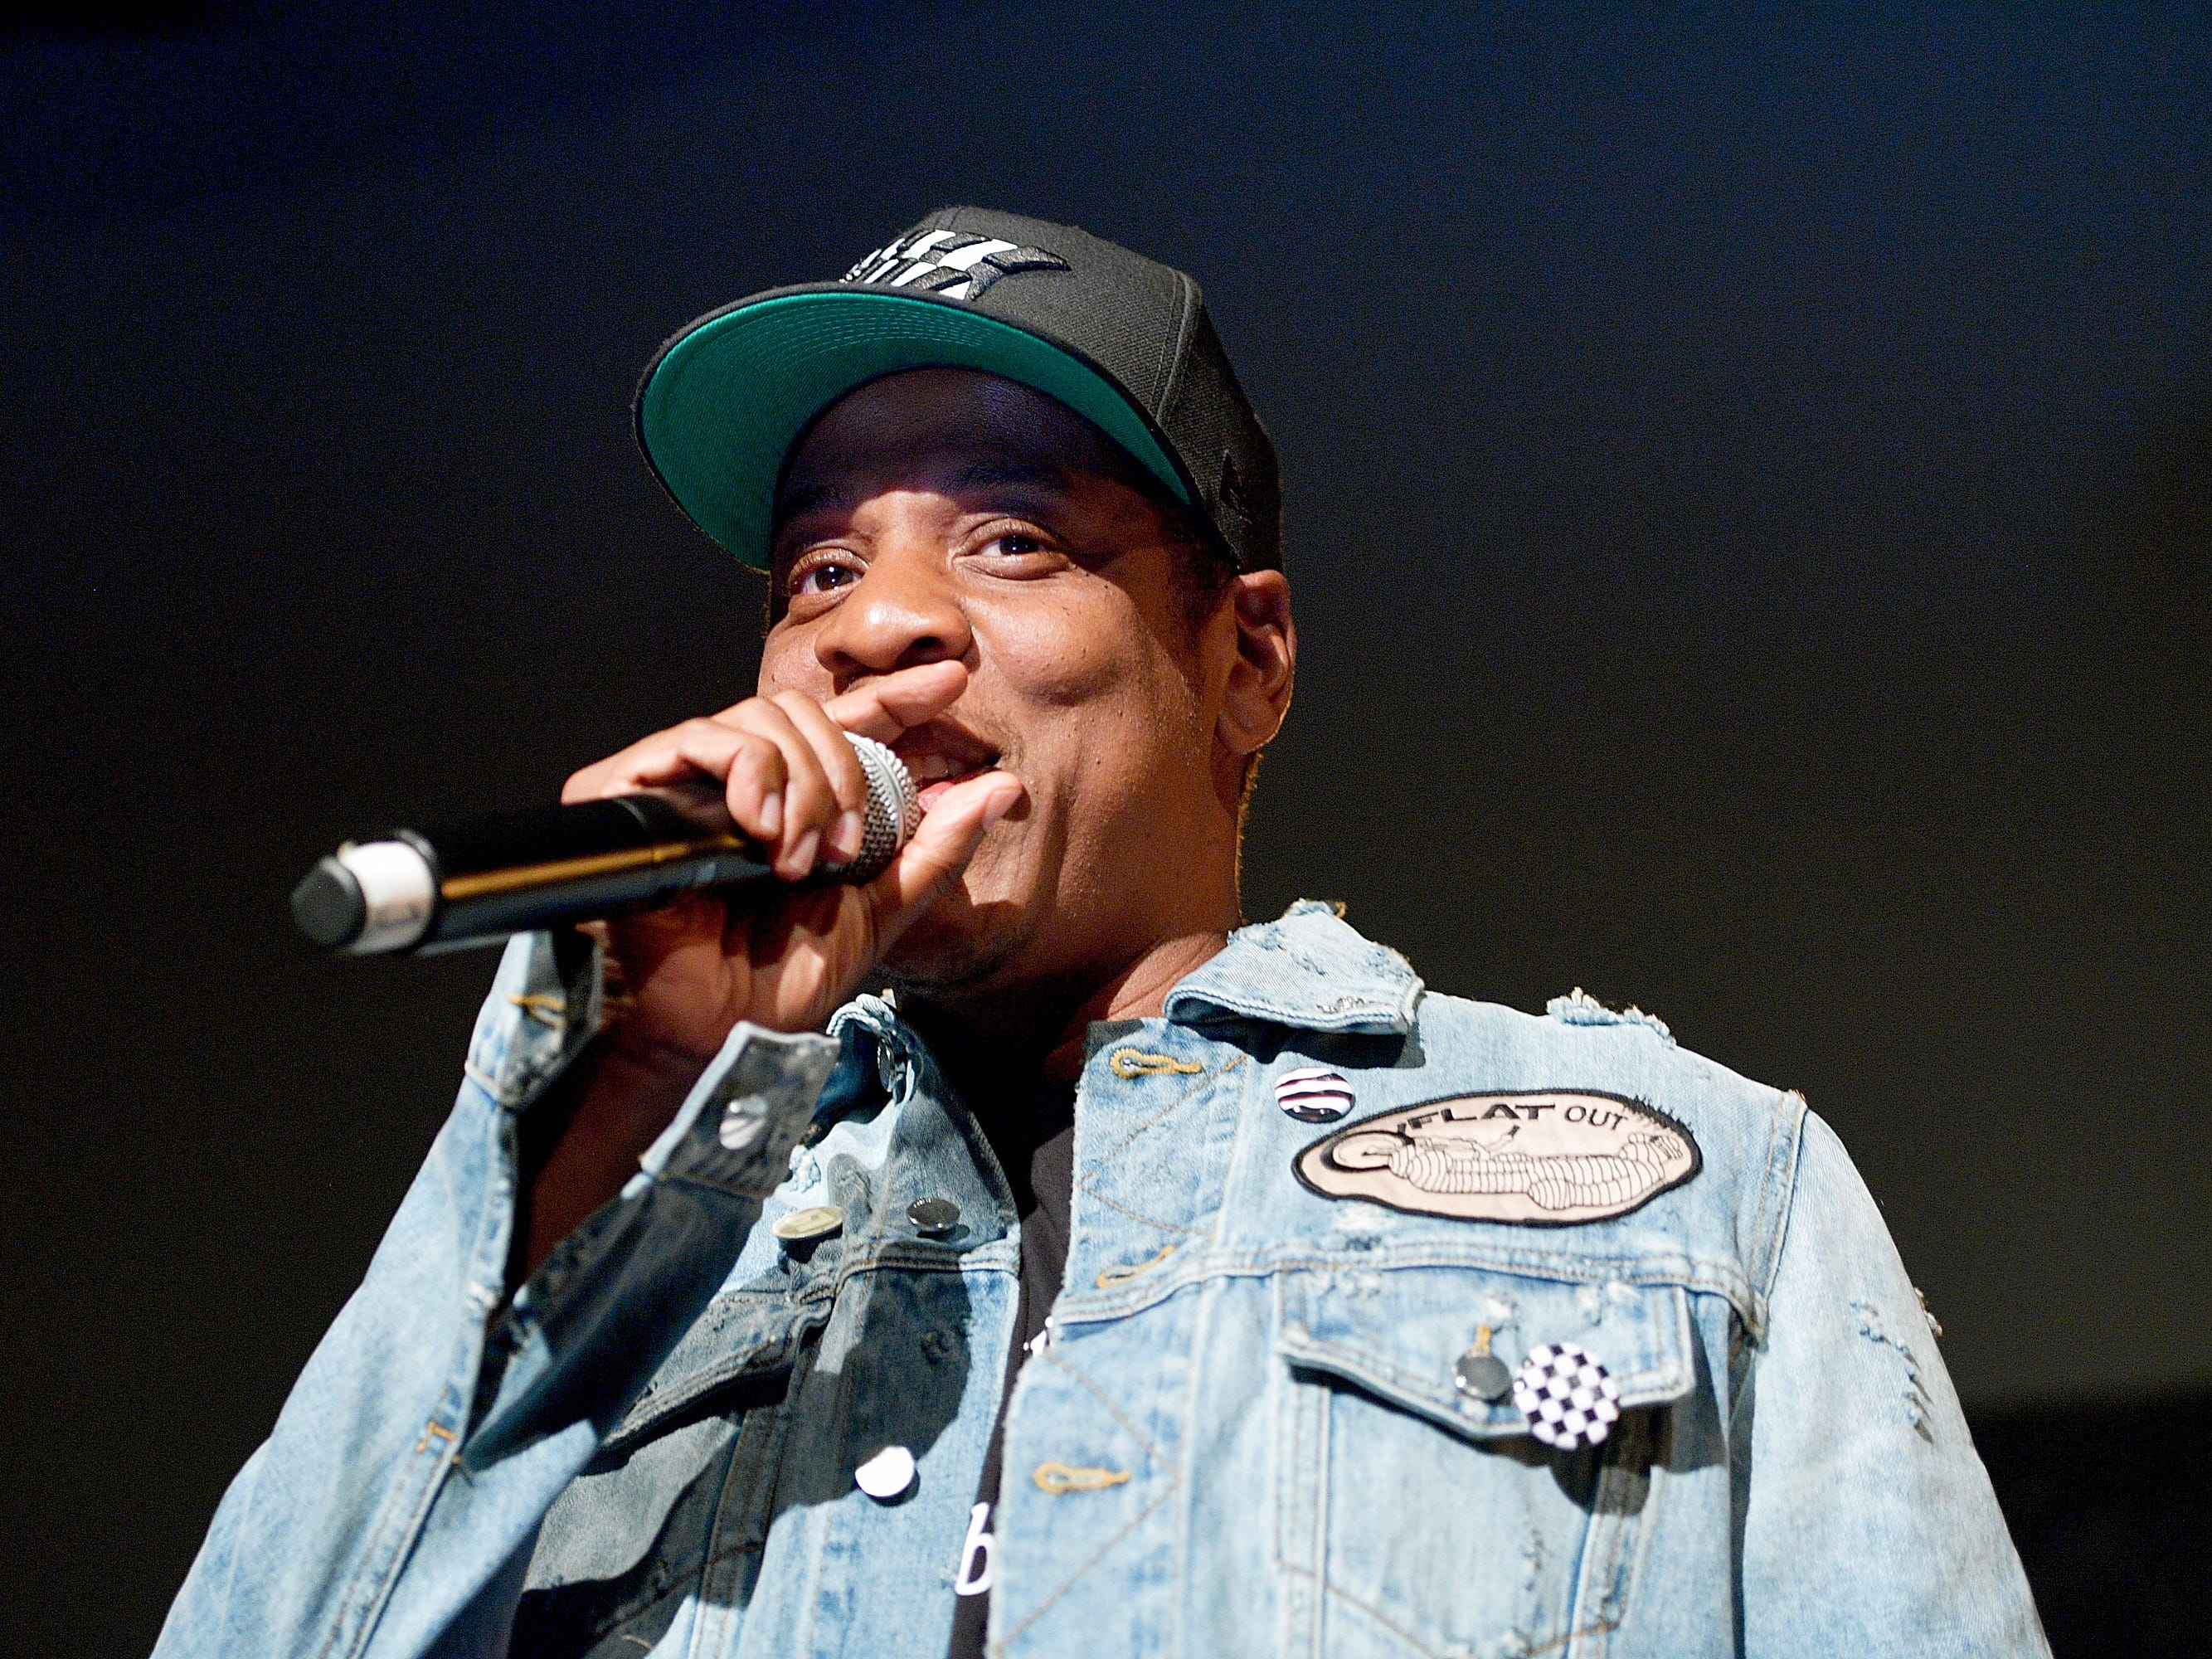 Jay Z last performed in Milwaukee 16 years ago when he played the Bradley Center with 50 Cent on the Rock the Mic tour.